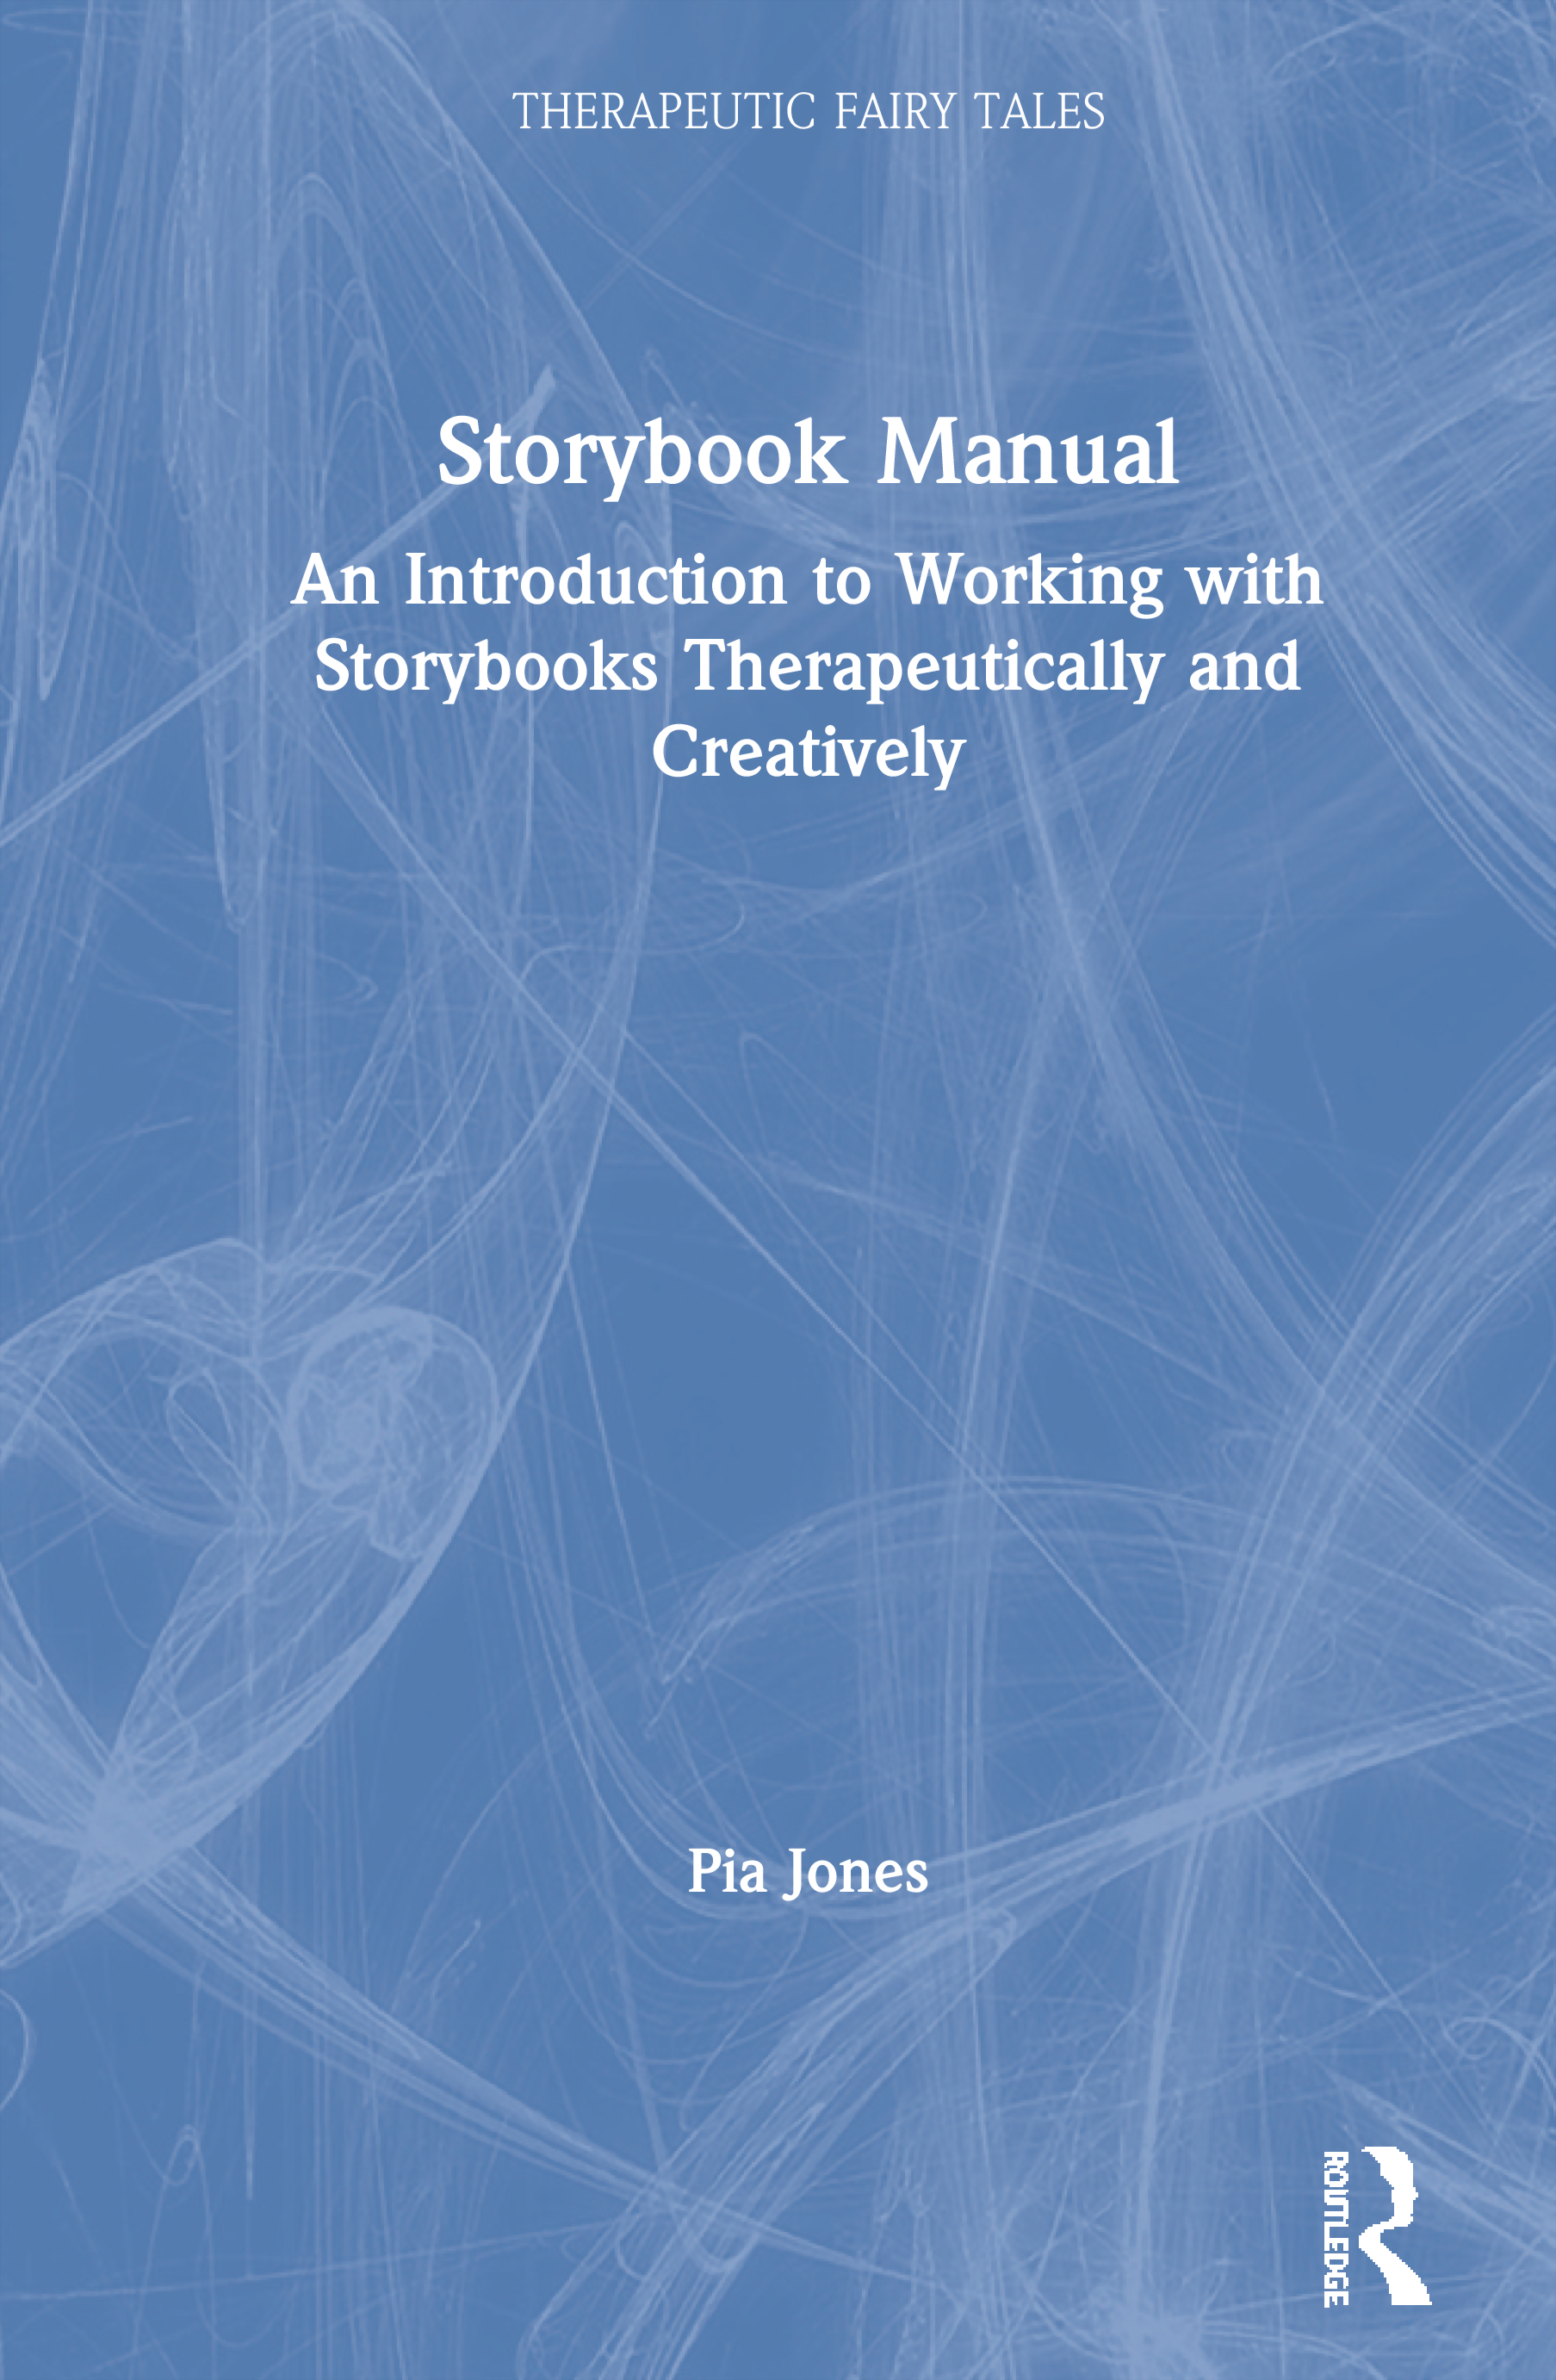 Storybook Manual: An Introduction to Working with Storybooks Therapeutically and Creatively book cover